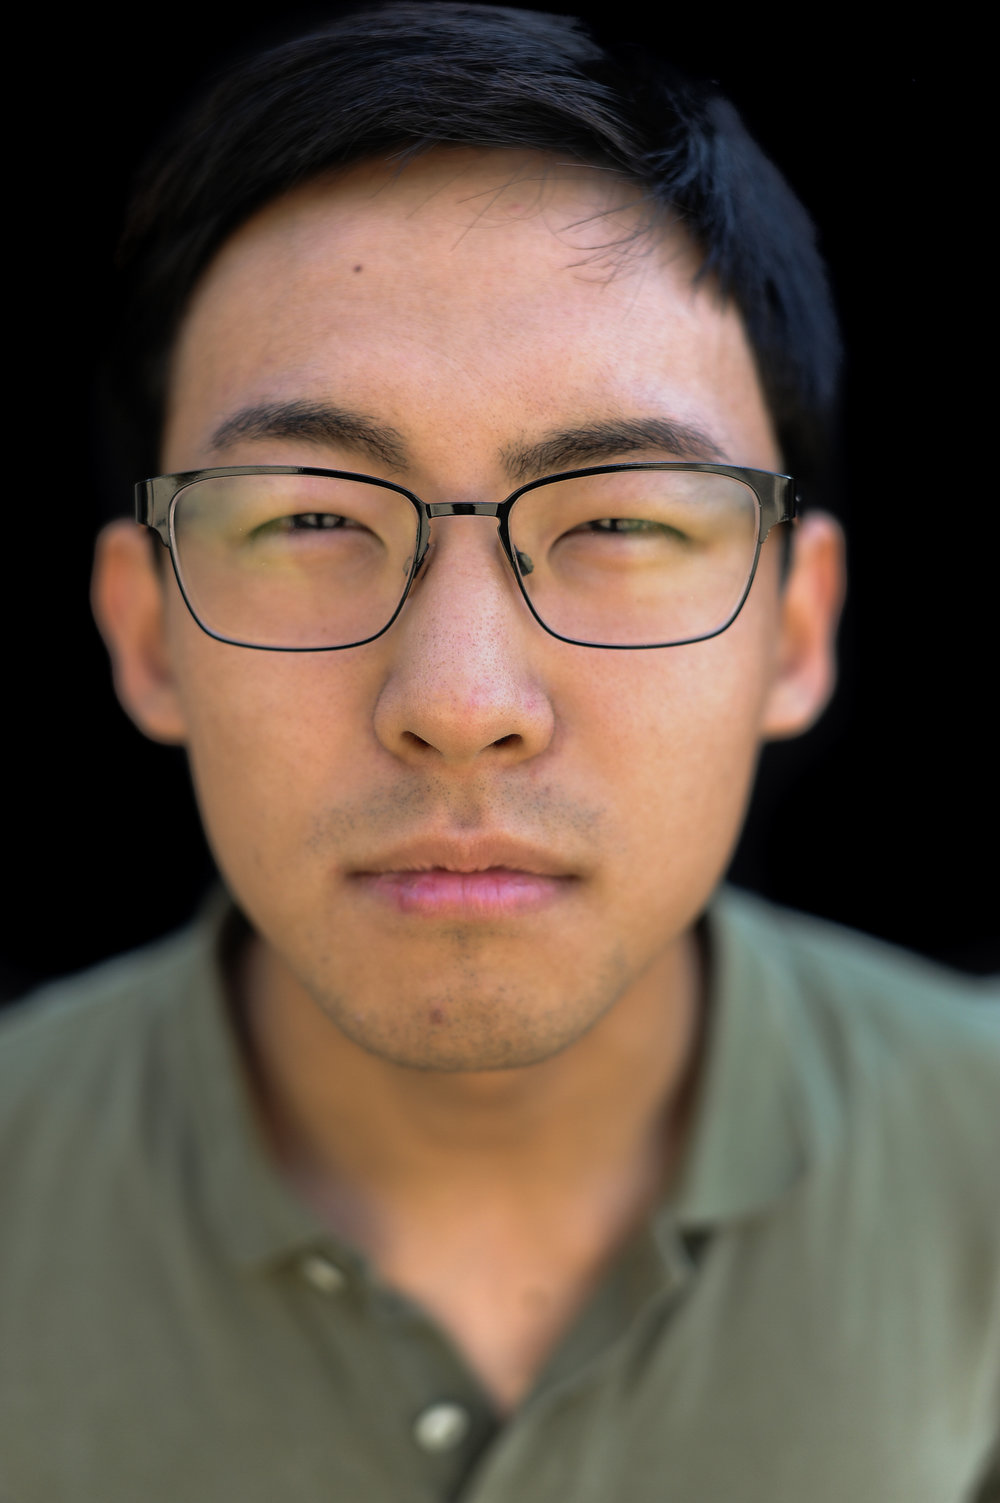 Name: John Yoon